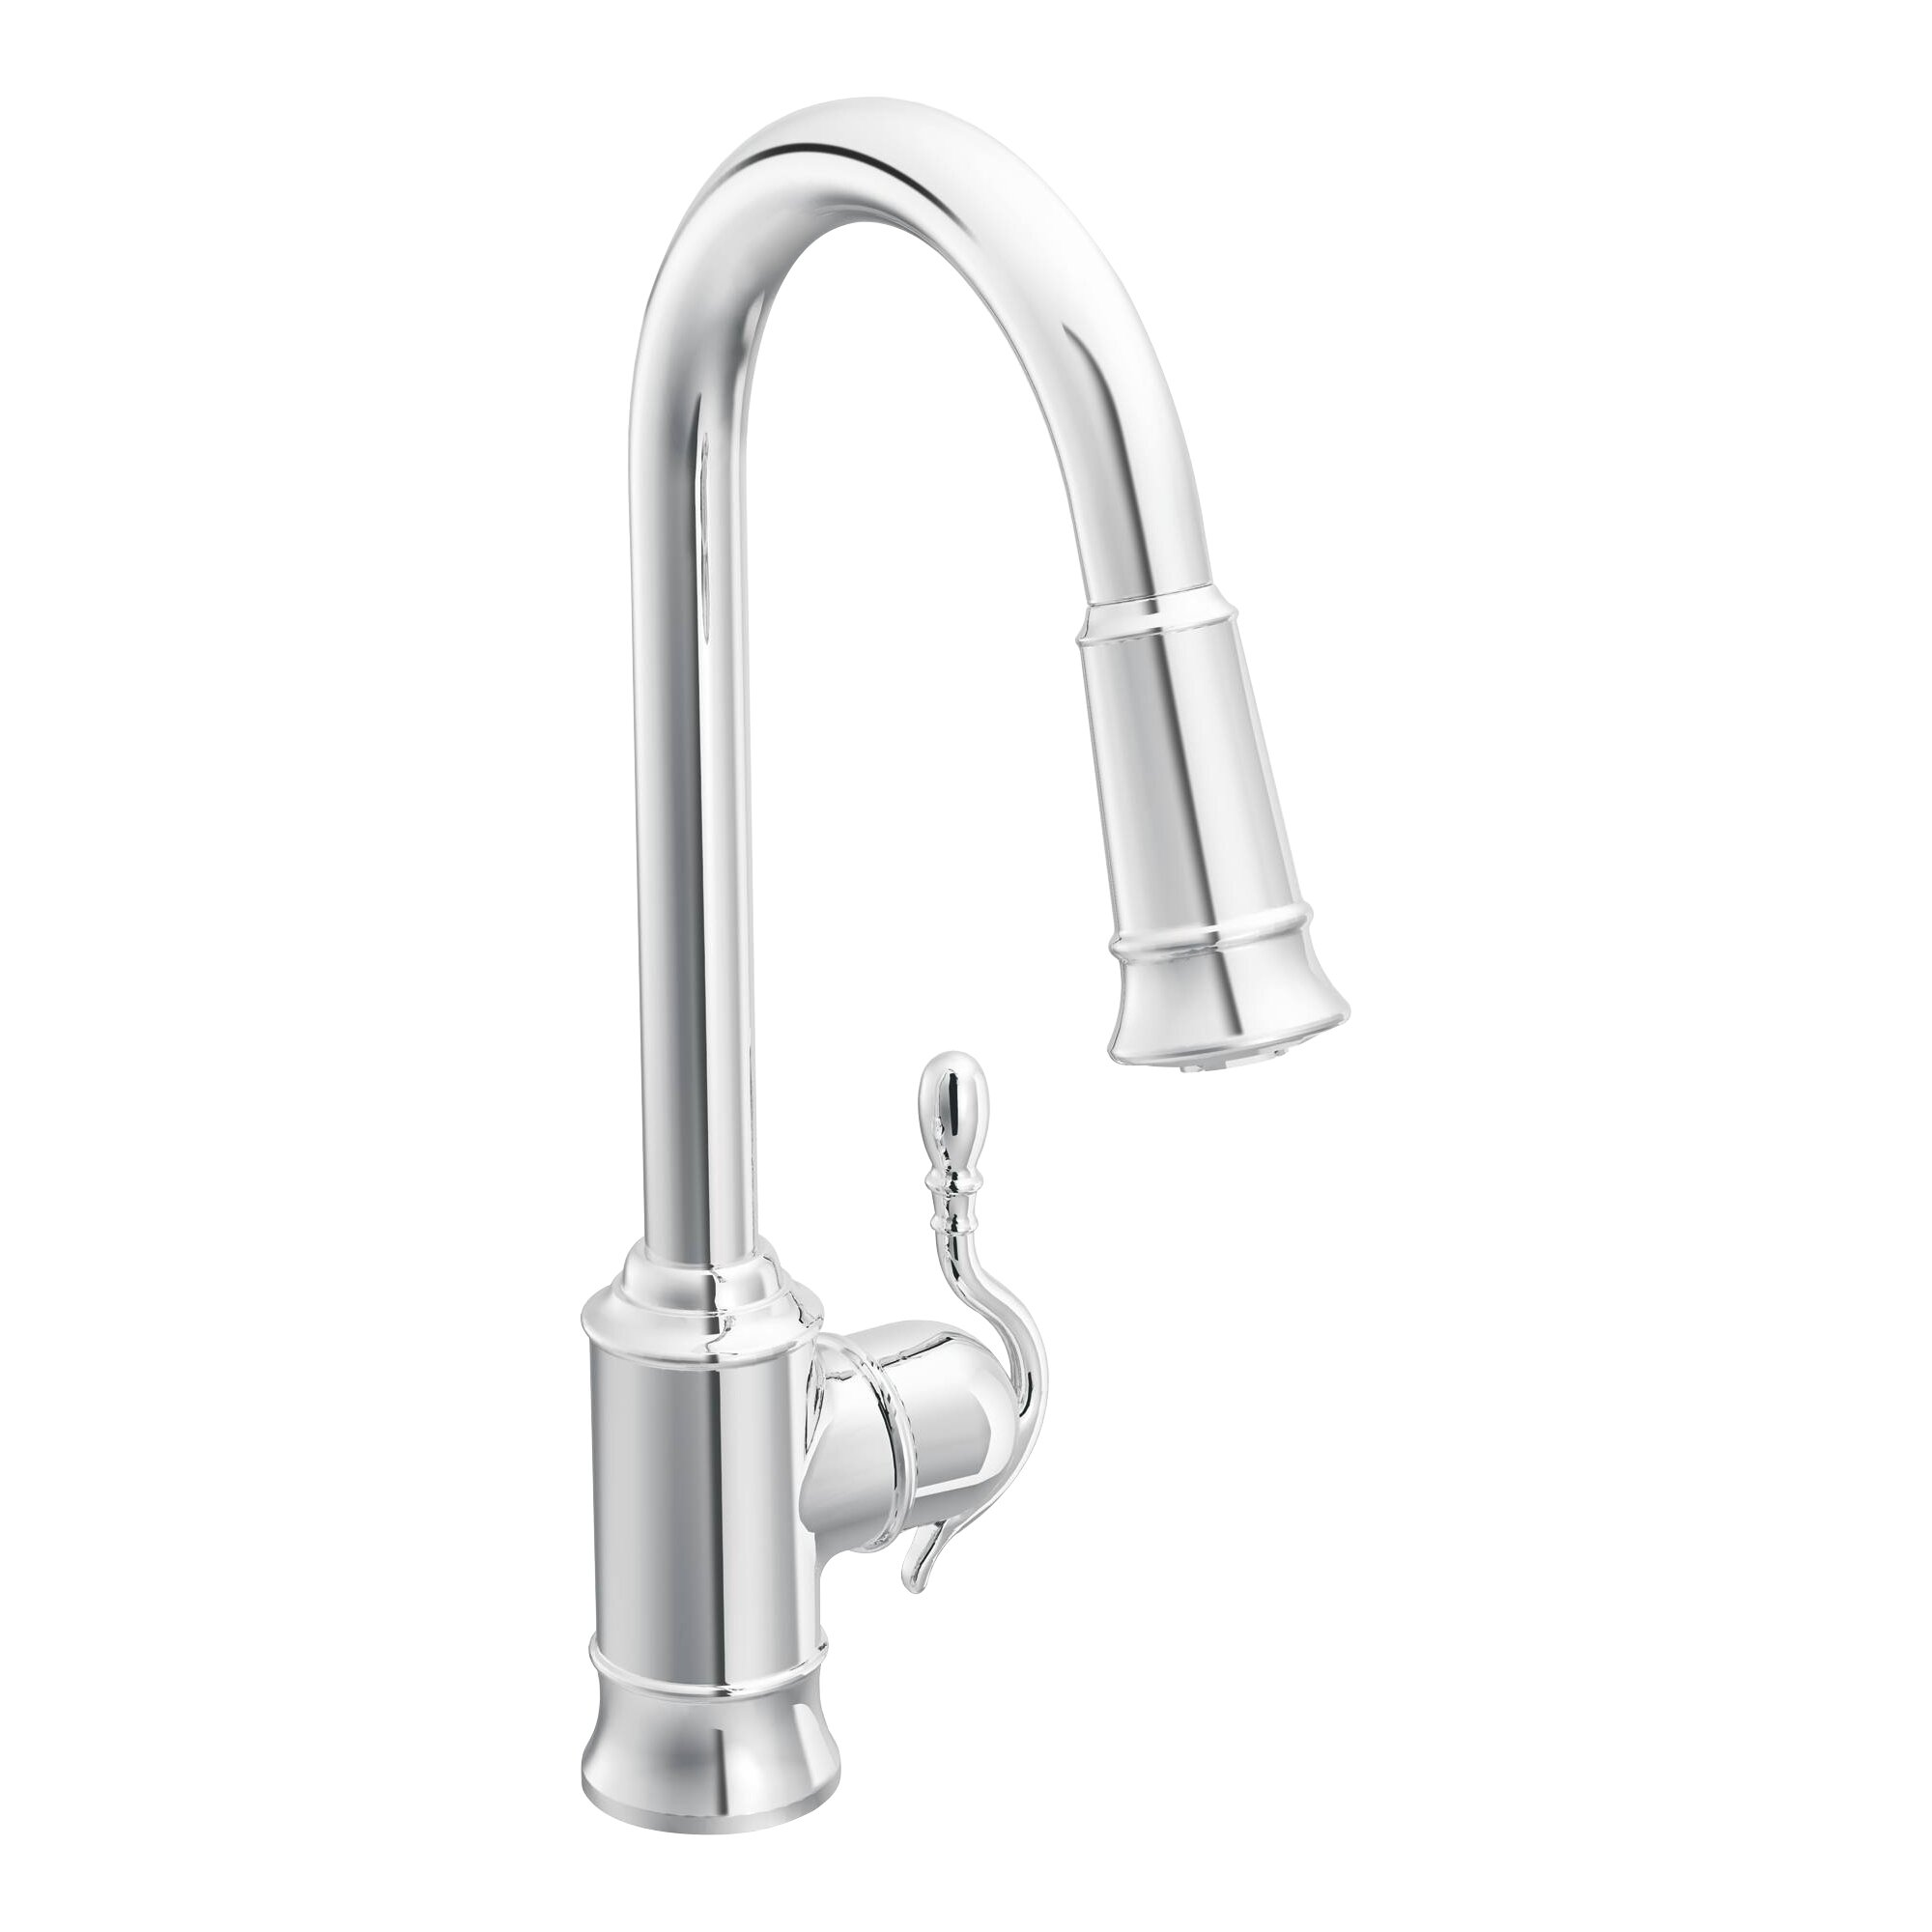 Moen One Handle Kitchen Faucet